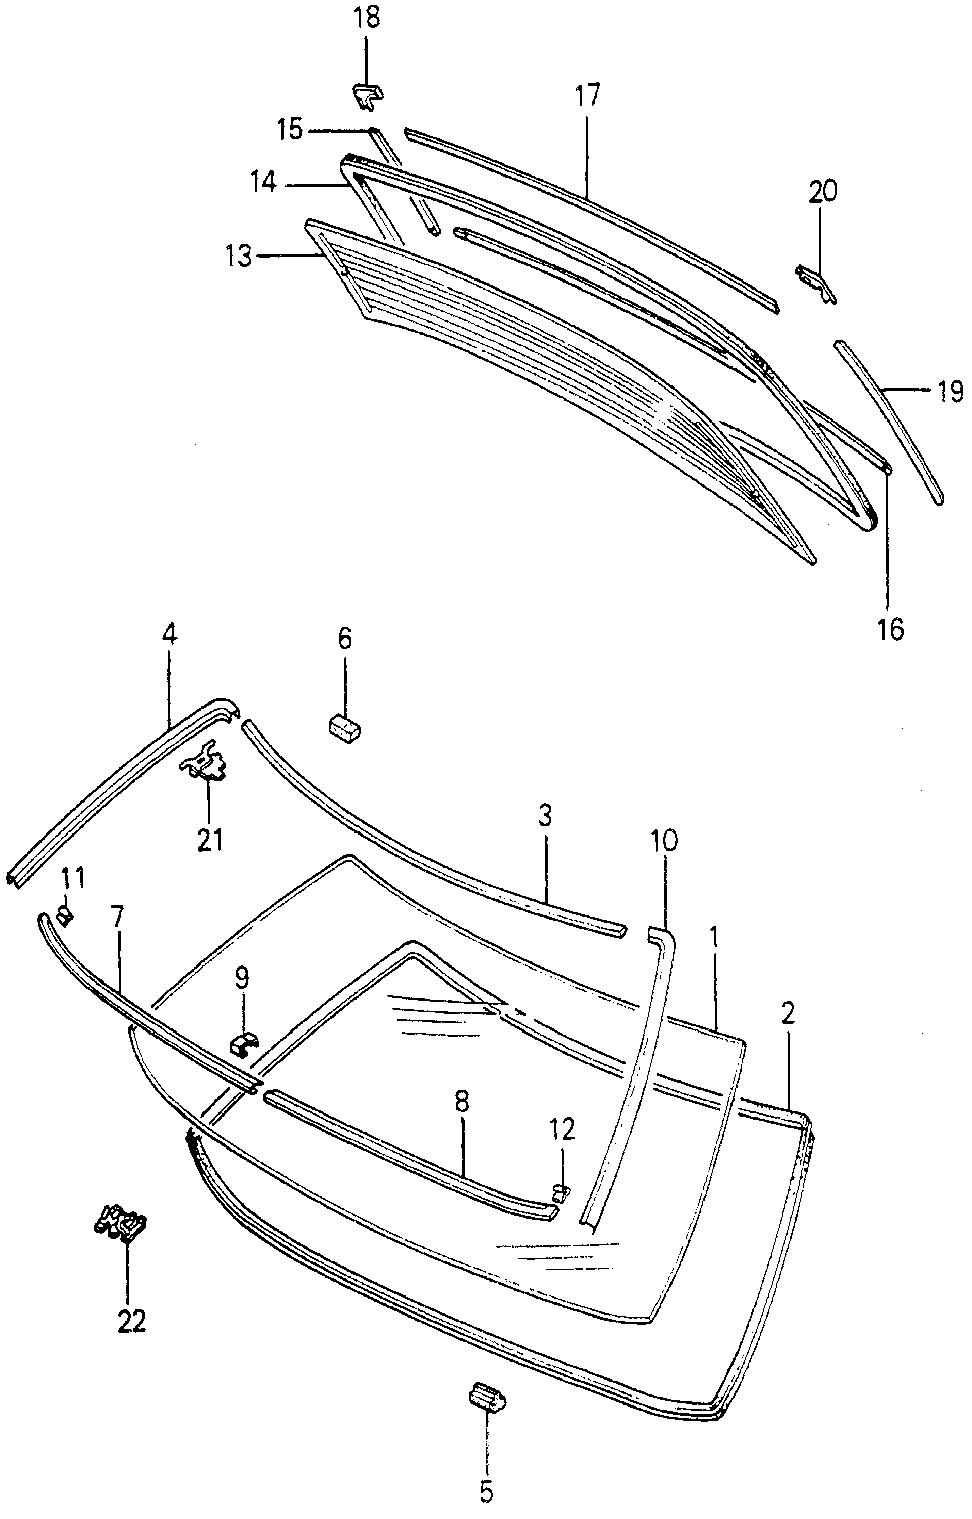 67806-692-000 - SPACER, WINDSHIELD (LOWER)